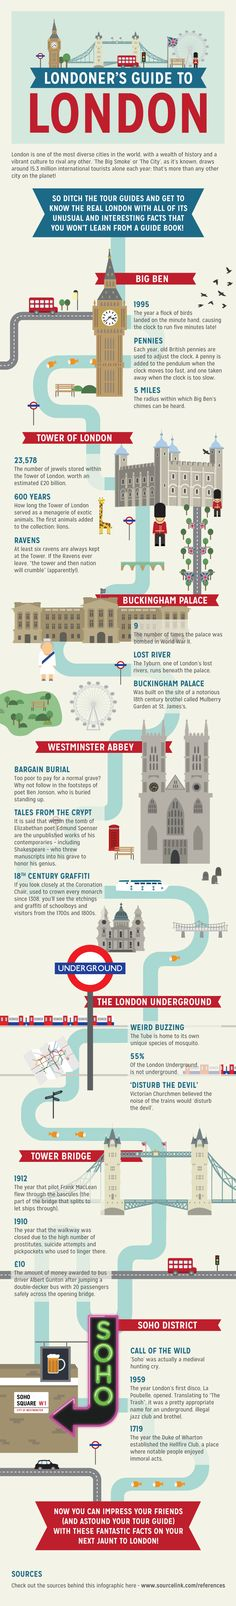 A Londoner's Guide to London